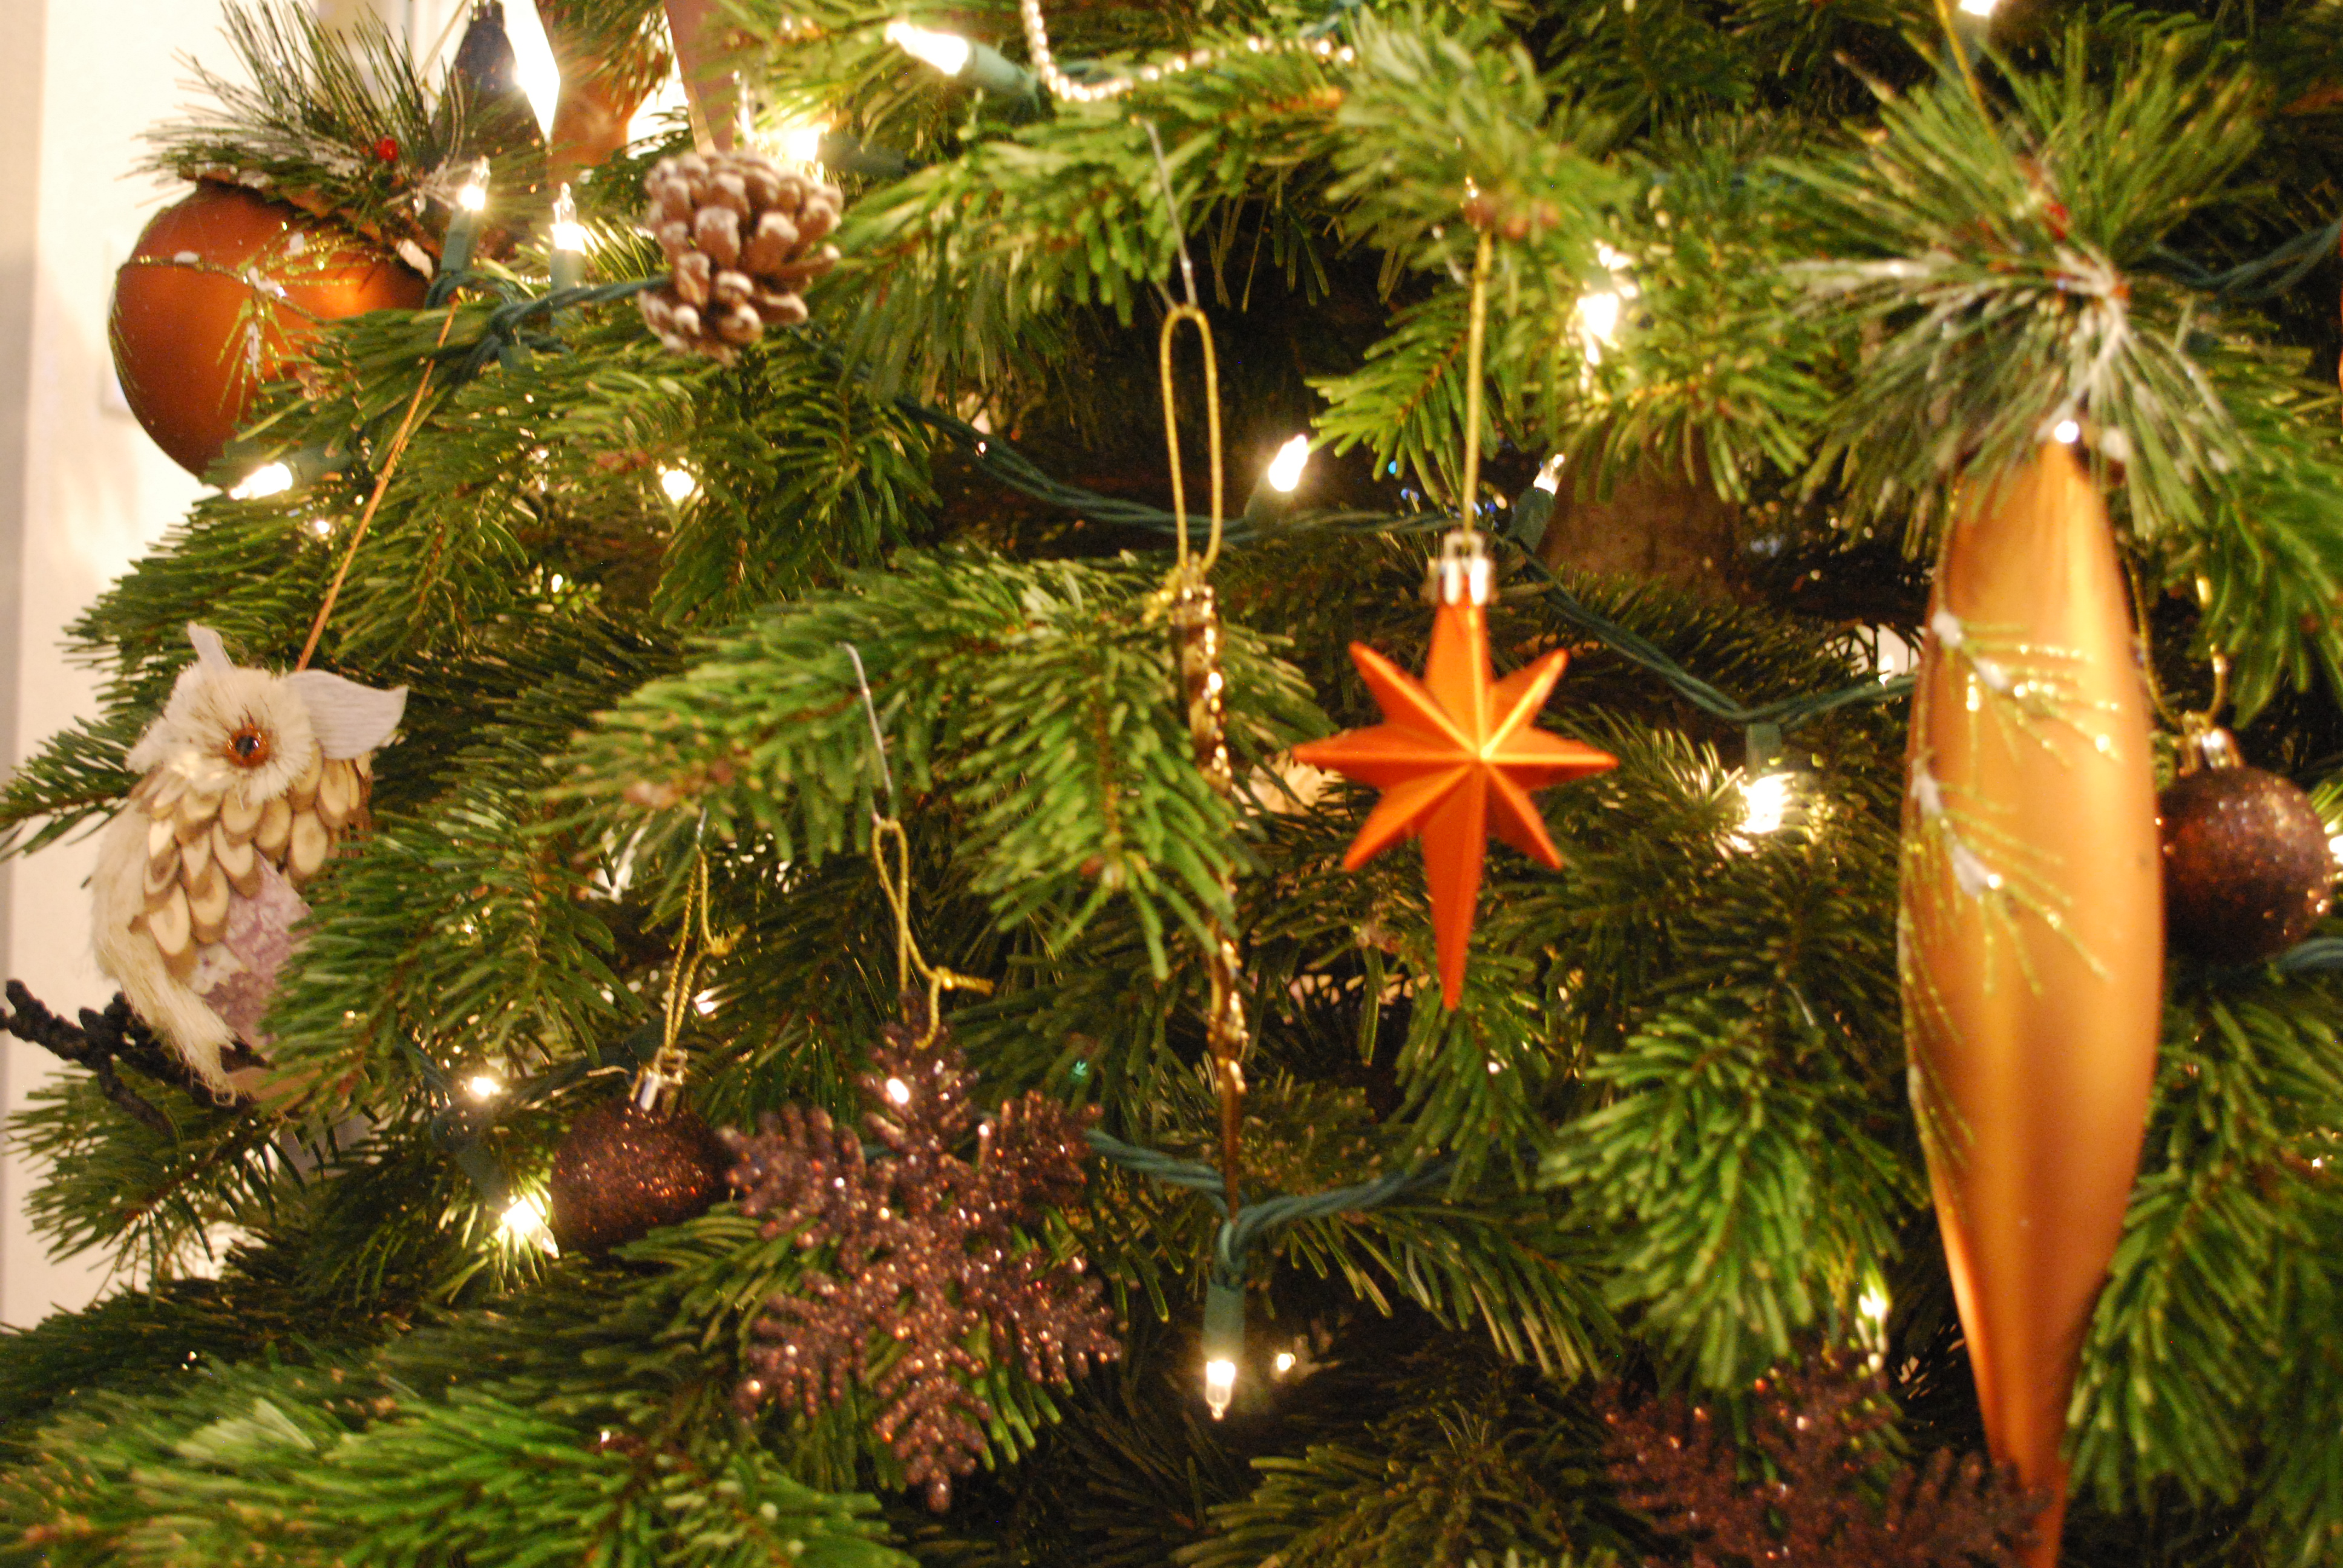 http://www.stapletondenver.com/wp-content/uploads/Christmas_Tree_Visitor_Center_1_1.JPG